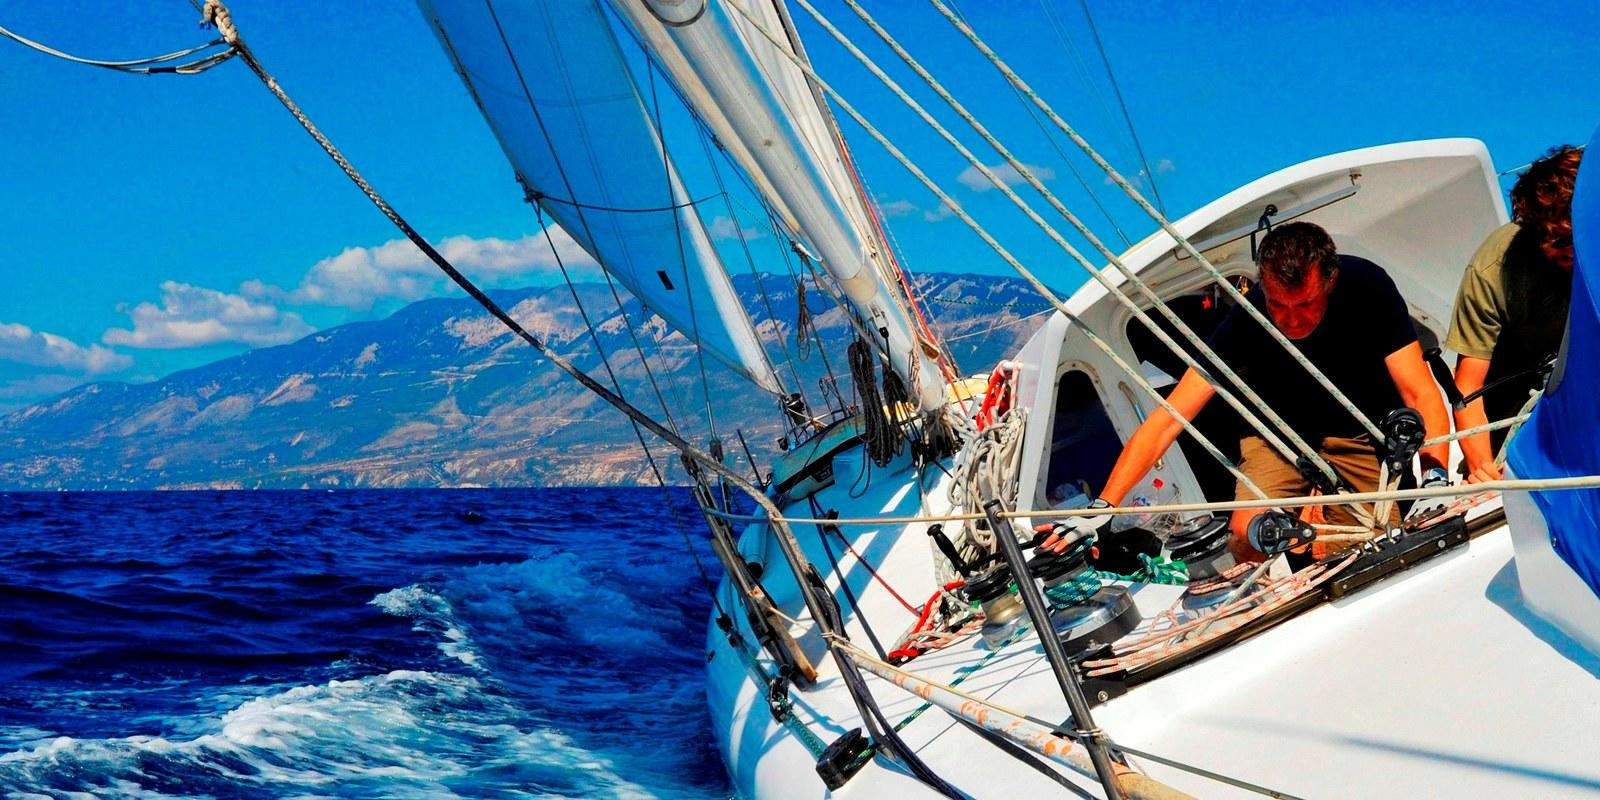 Live your adventure in the Mediterranean Sea between history and natural beauties, sea and stars!